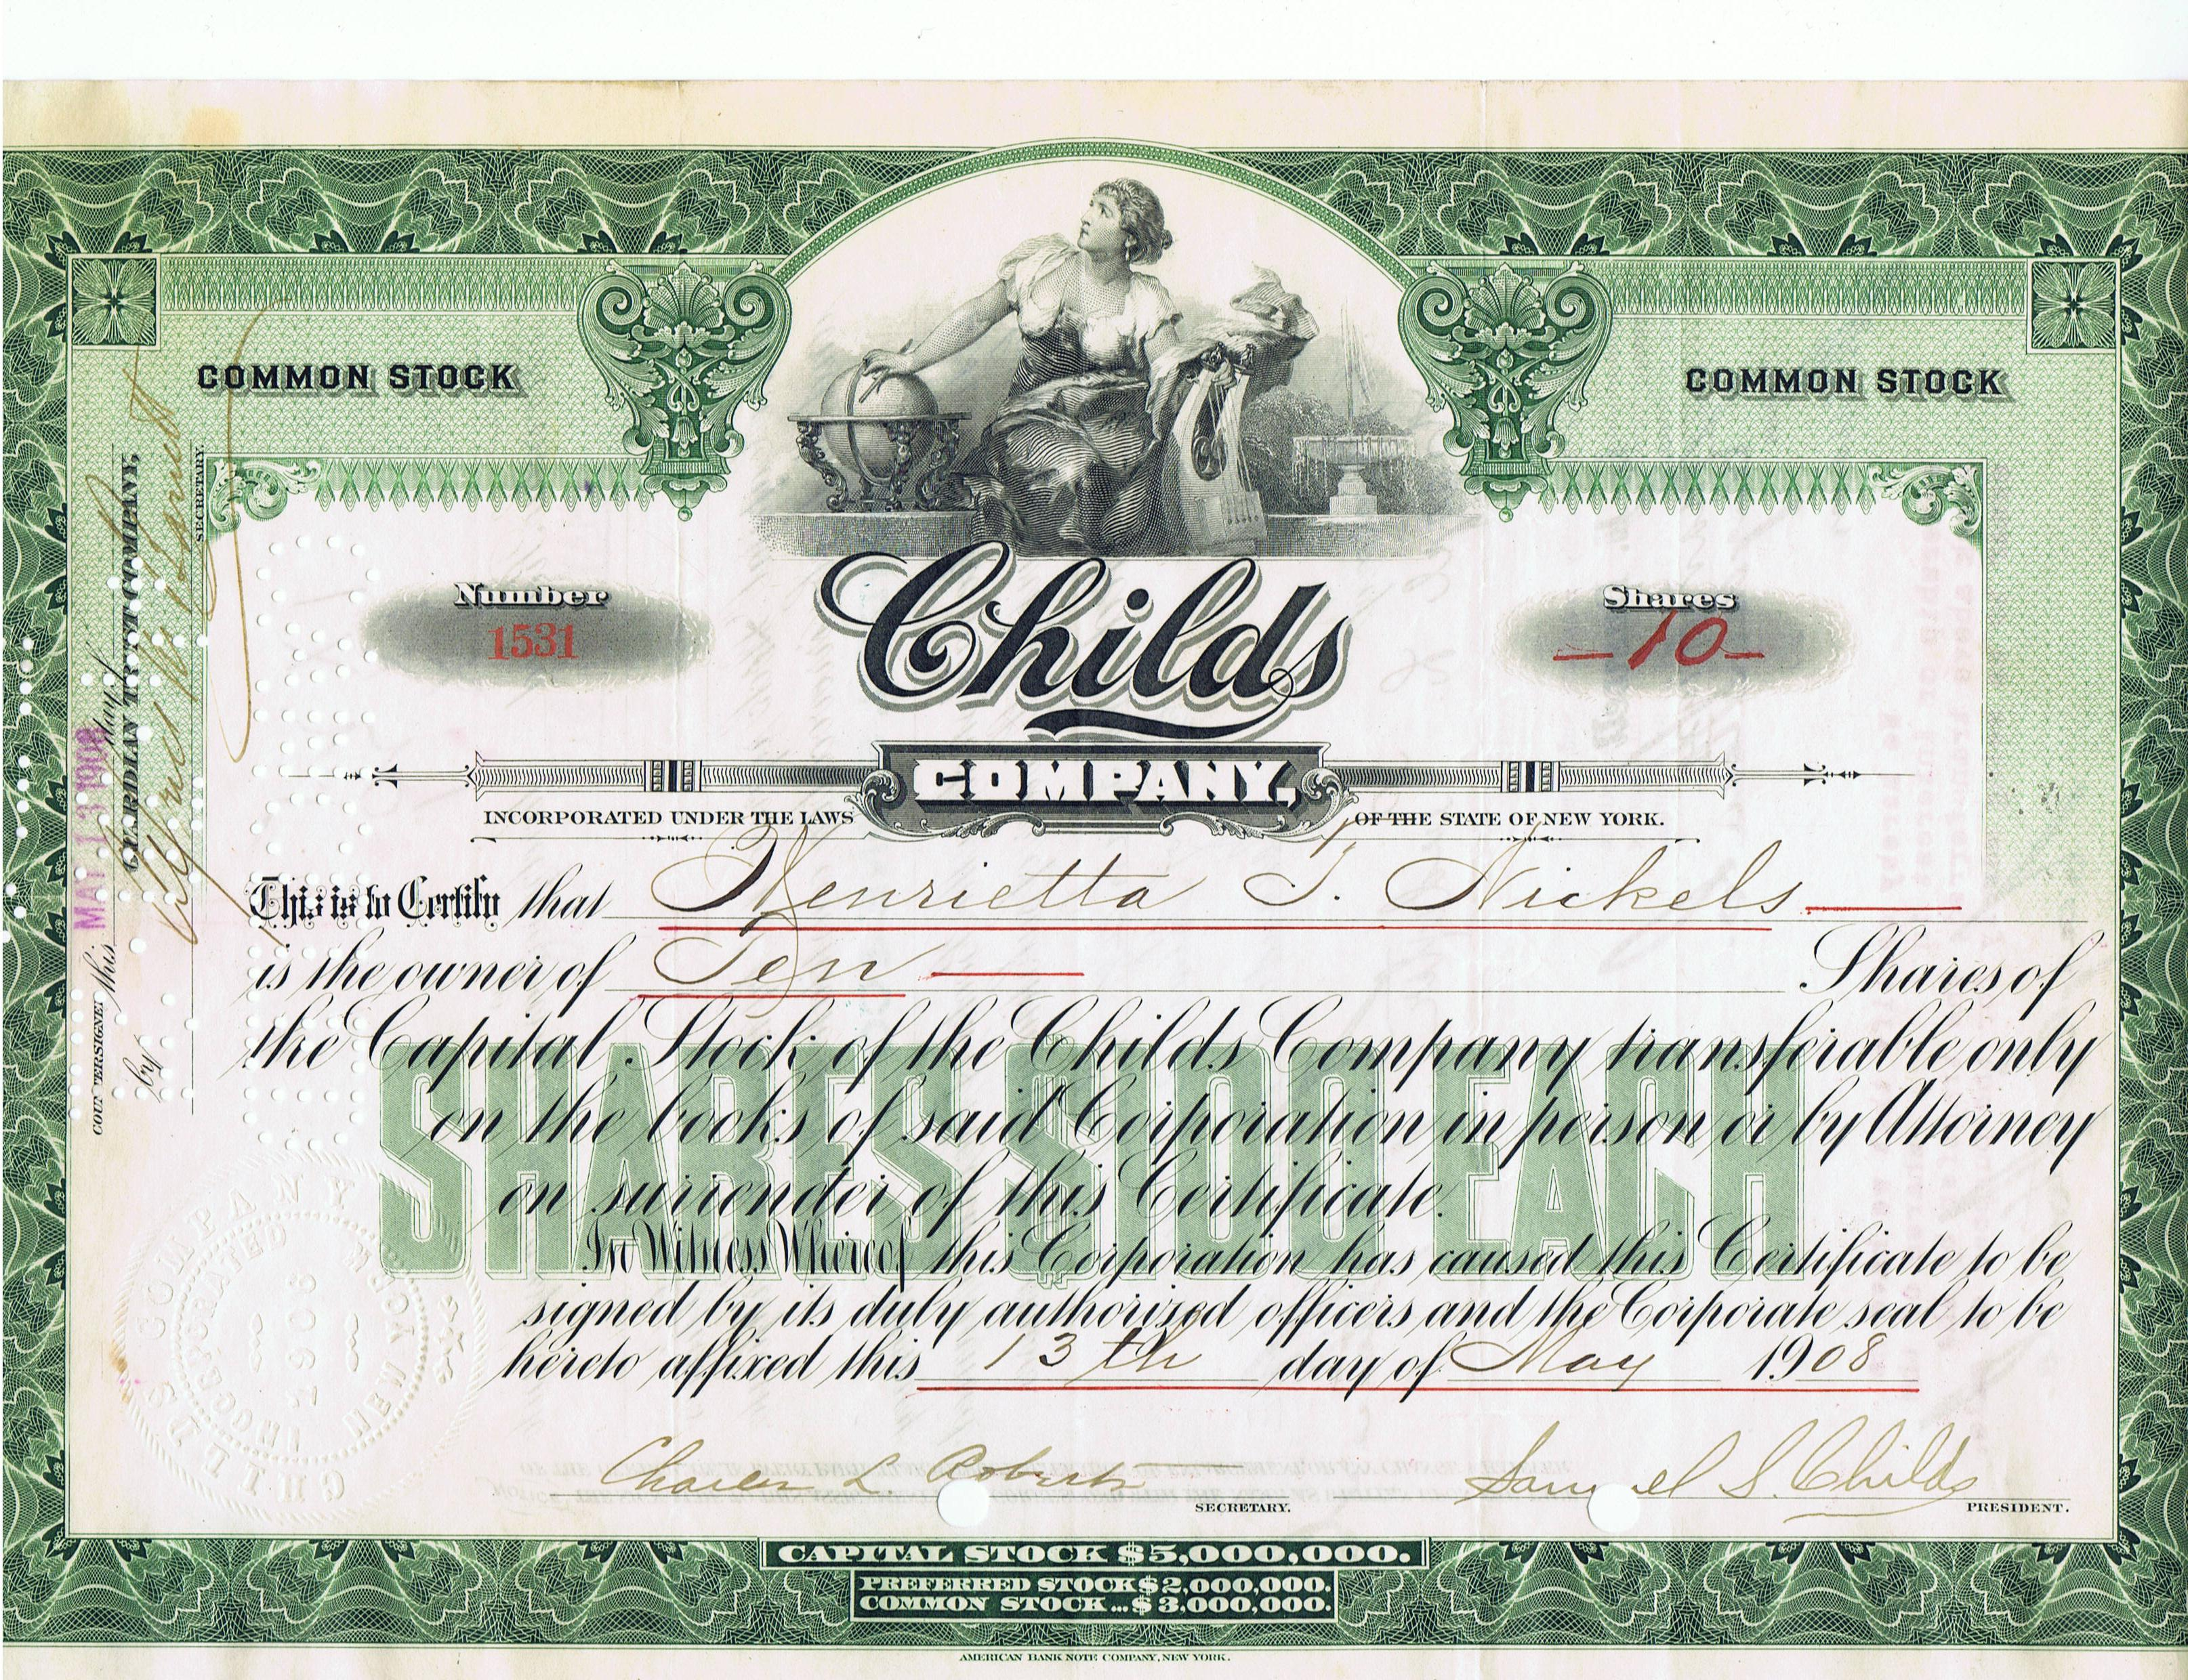 File:Childs Company Stock Certificate 1908.jpg - Wikipedia